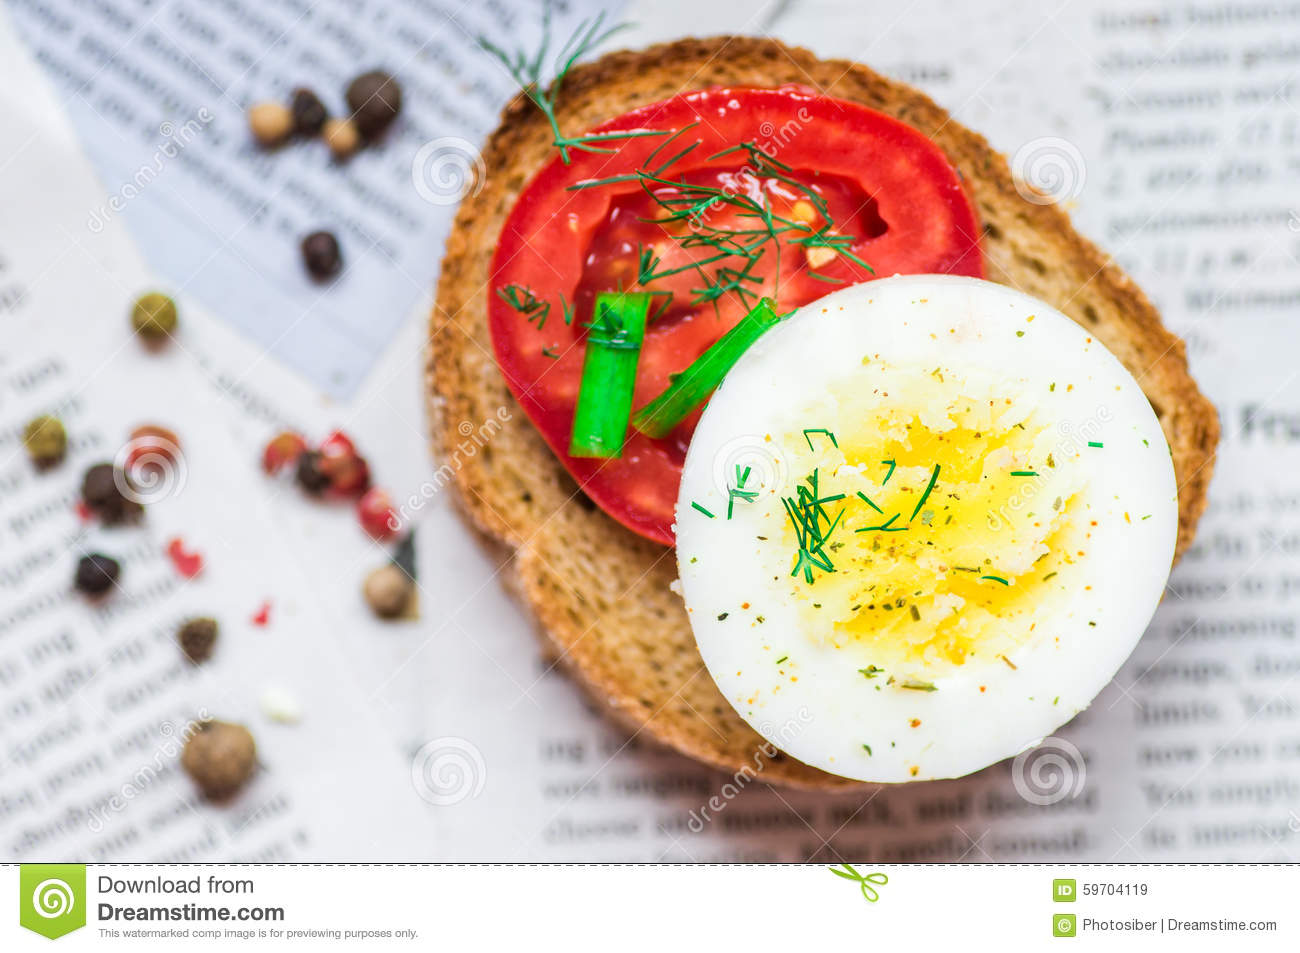 More similar stock images of ` Sandwich with boiled egg and tomato `